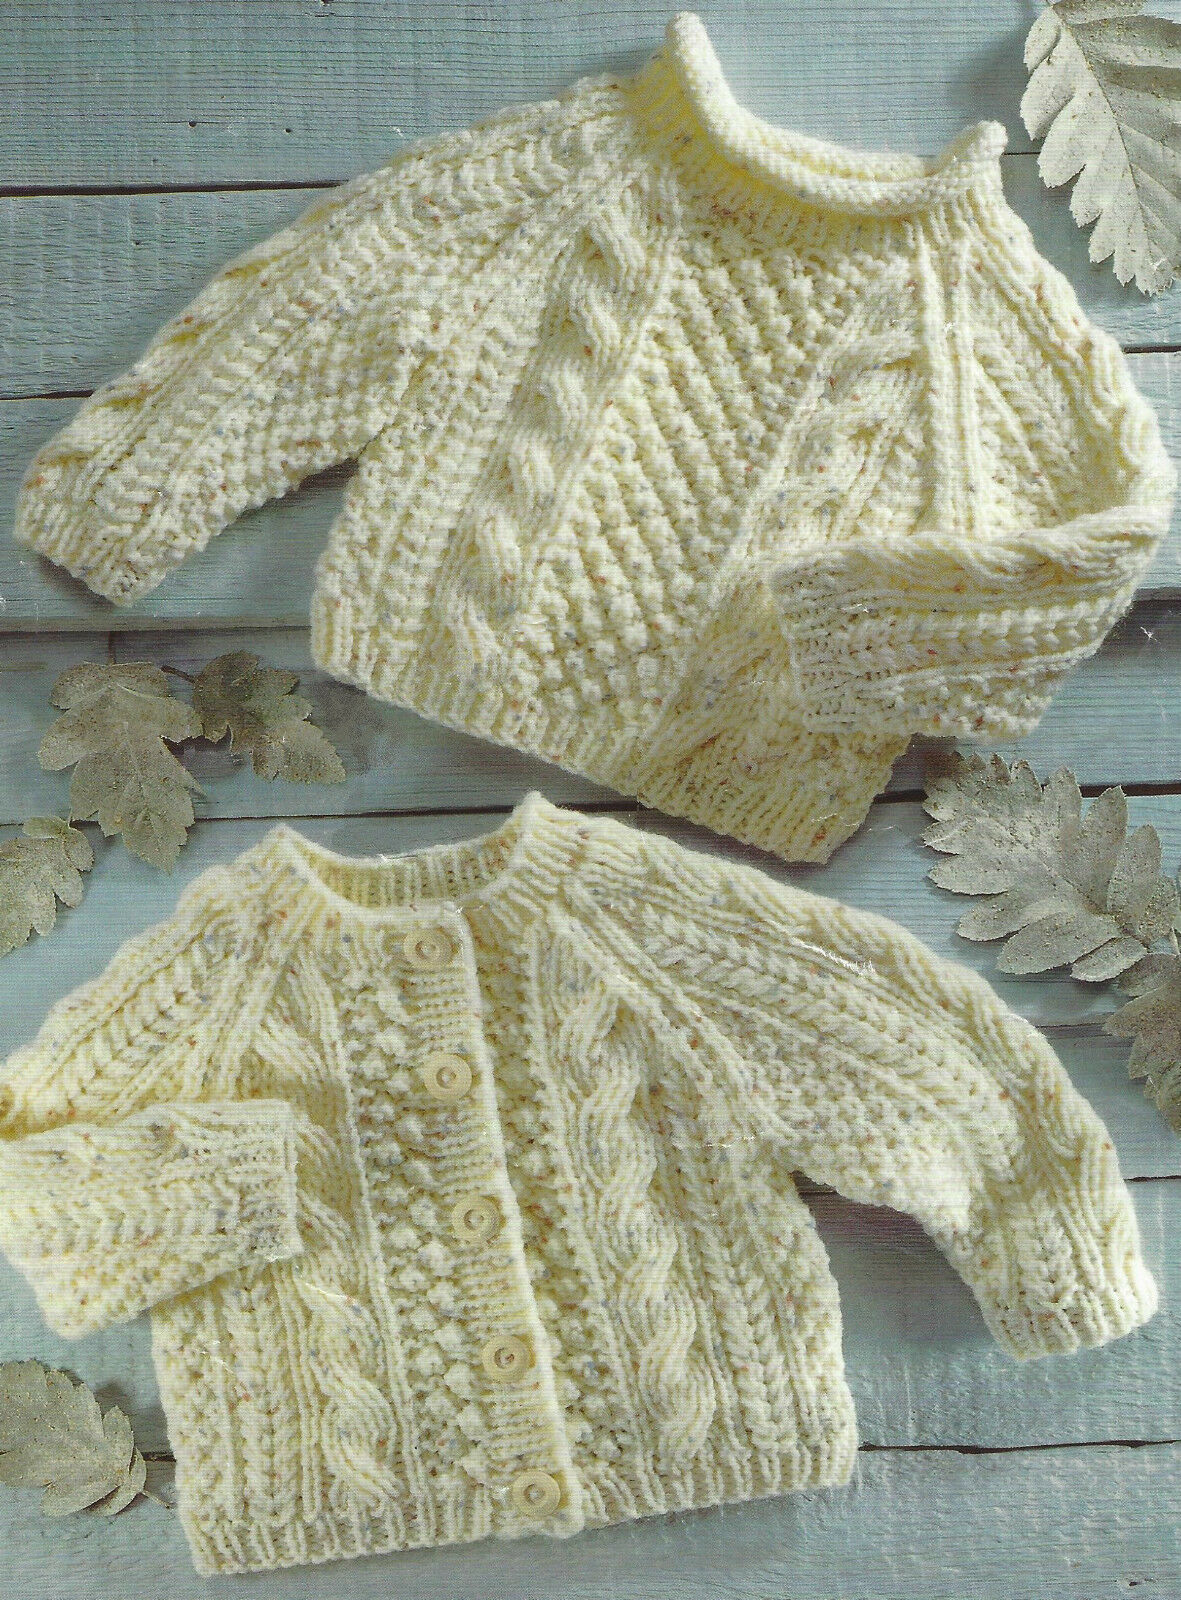 Childs Aran Jumper Knitting Pattern : Aran Knitting Pattern Cardigan Sweater with cables Baby Girls Boys 16-26